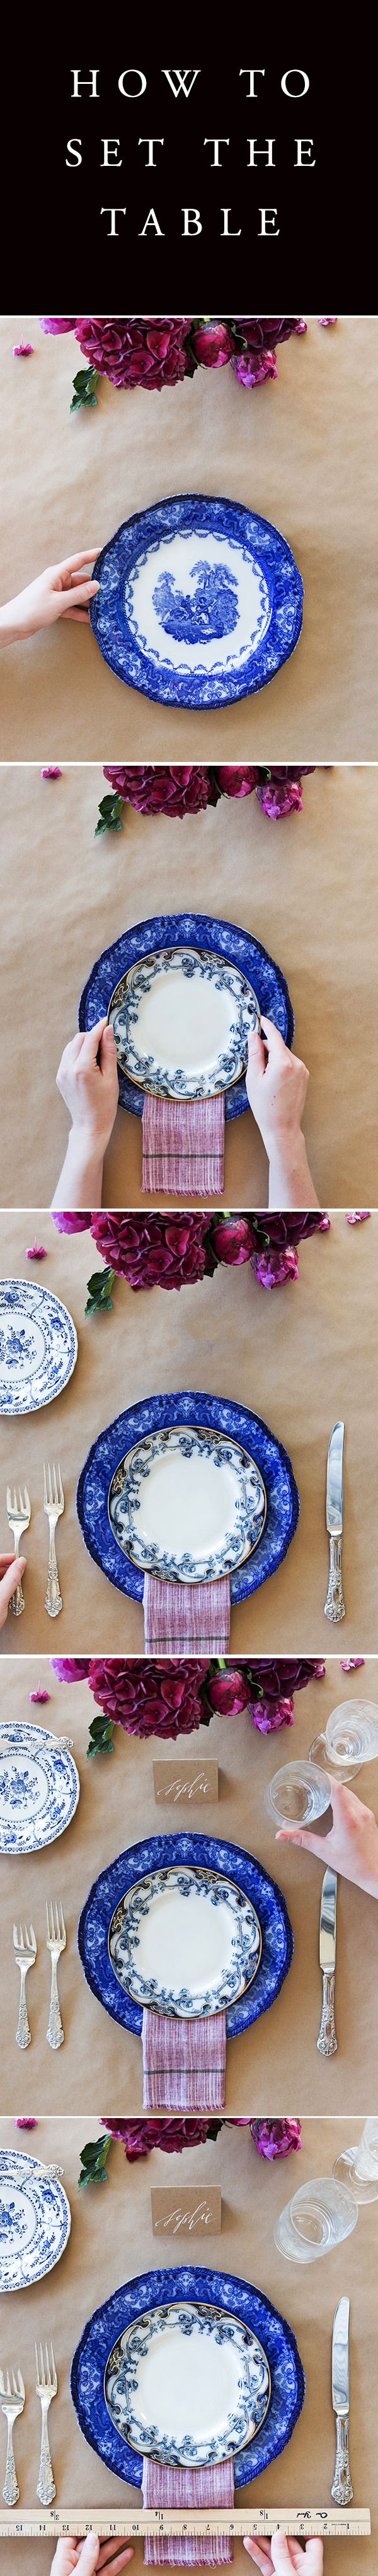 Formal dinner table setting etiquette - 17 Best Ideas About Formal Table Settings On Pinterest That Party Place Table Setting Guides And Table Setting Diagram